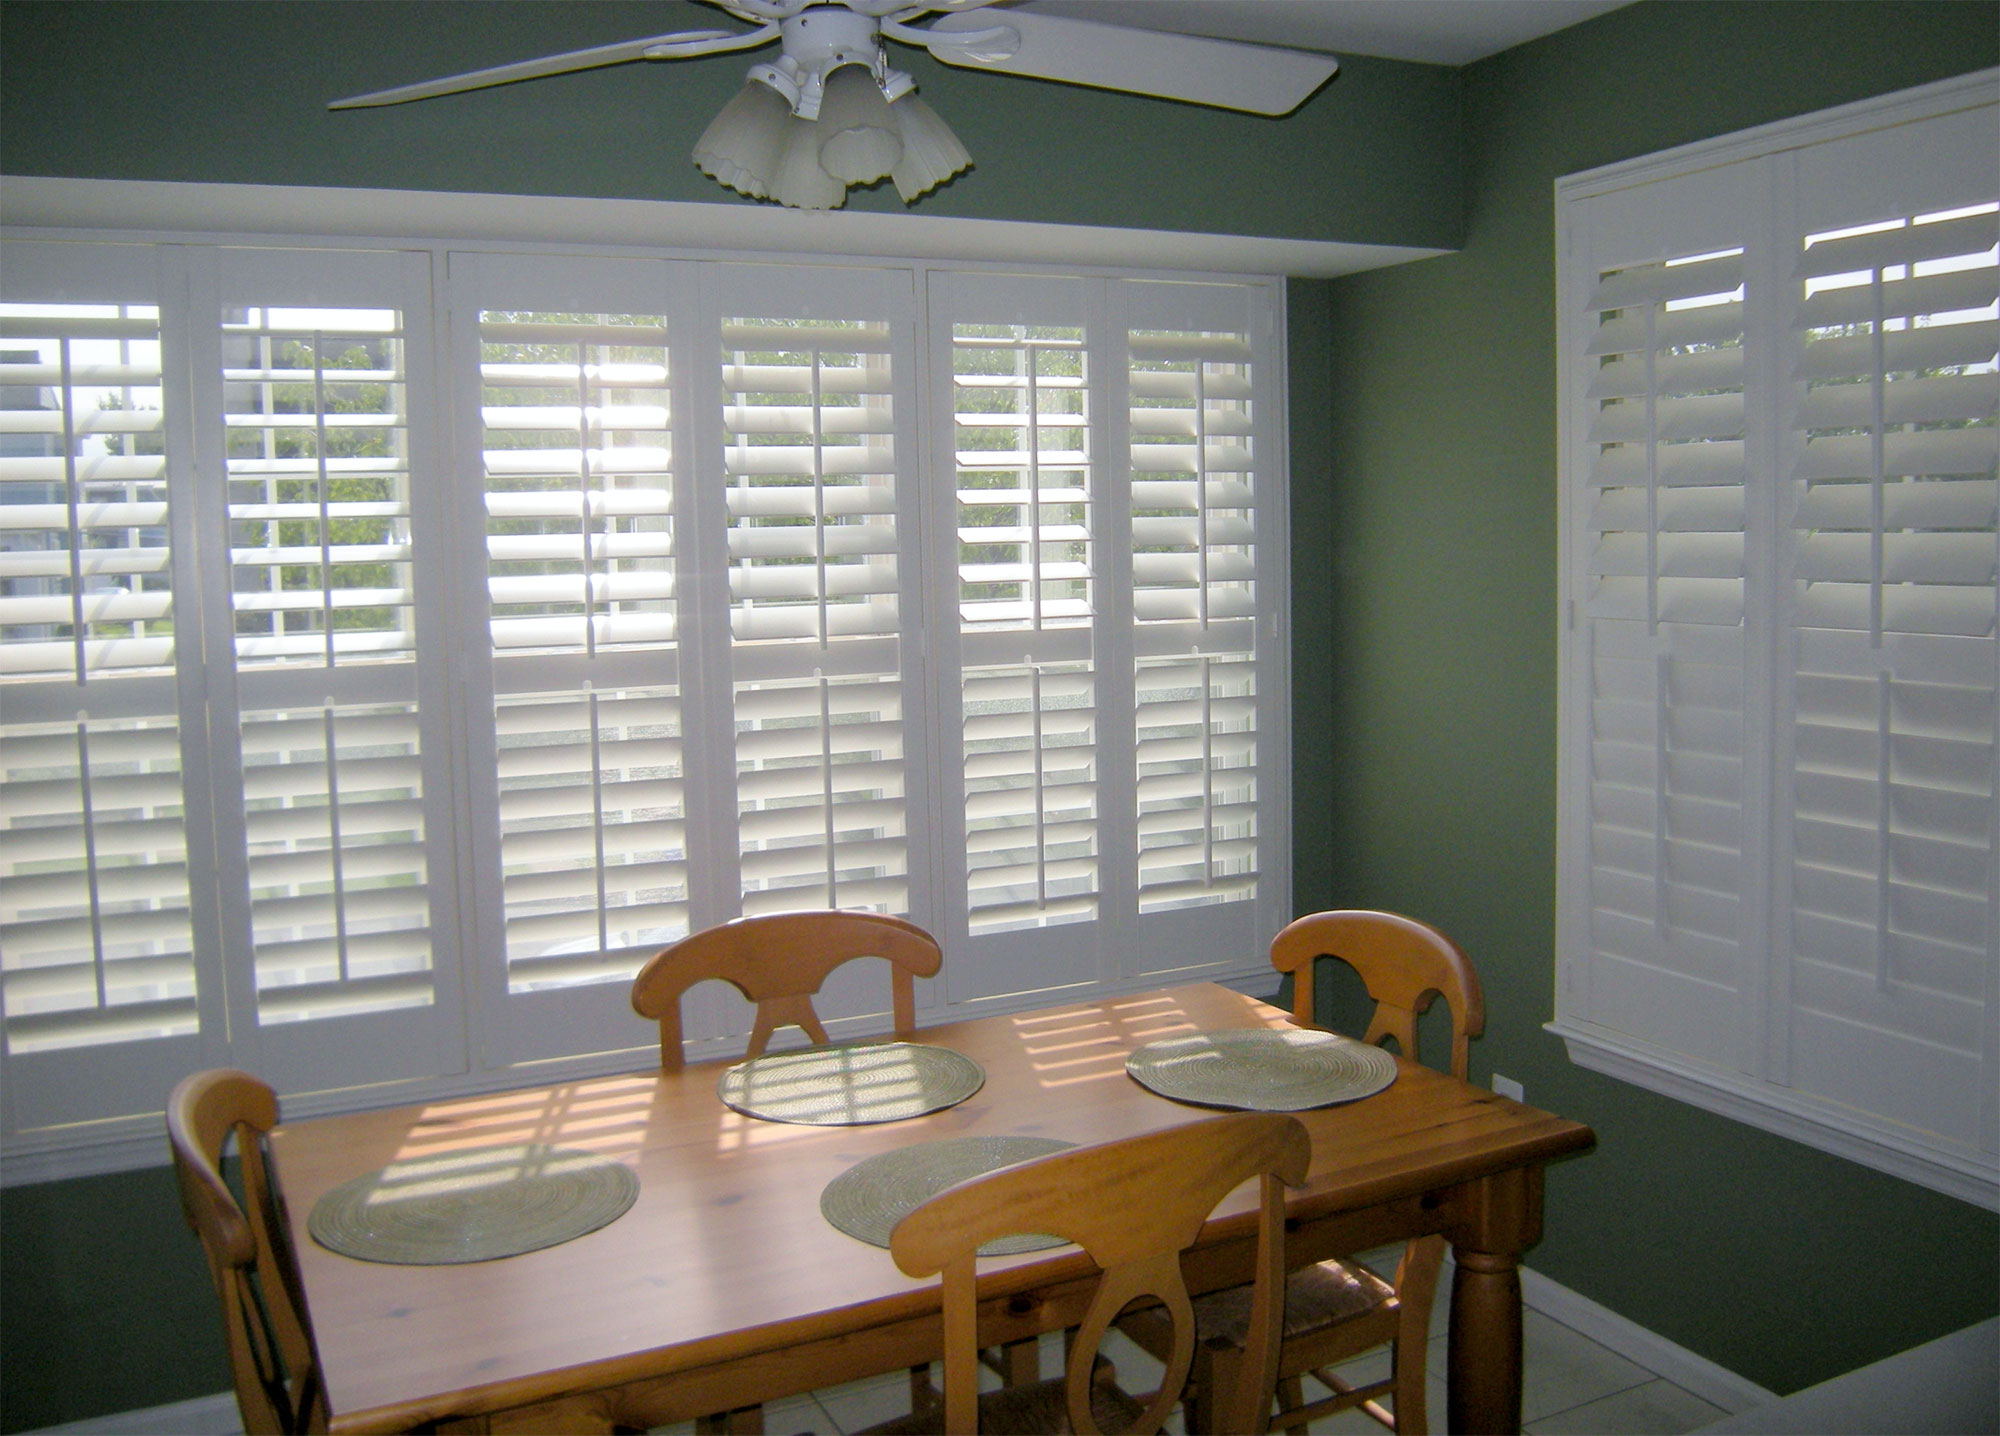 The Plantation Shutter Experts